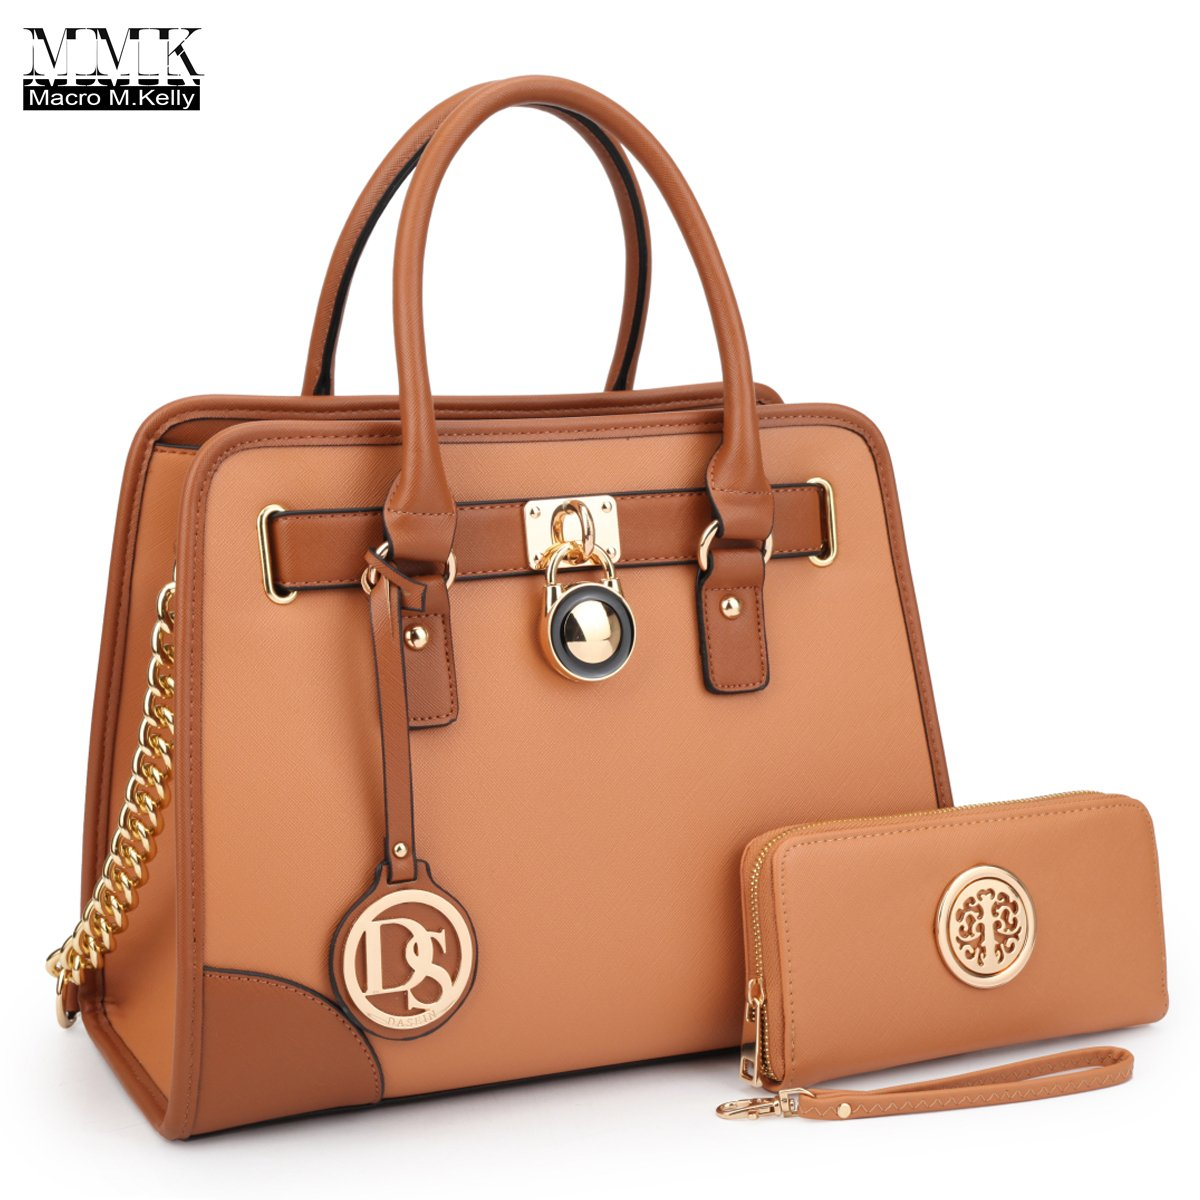 MMK Collection Medium Size Vegan Leather Two-Tone Women Satchel with Chain Shoulder Strap and FREE Matching Wallet~Popular Gift for Lady~Amazing Travel Handbag(6892W) (XL-MA-02-6892-W-BR)